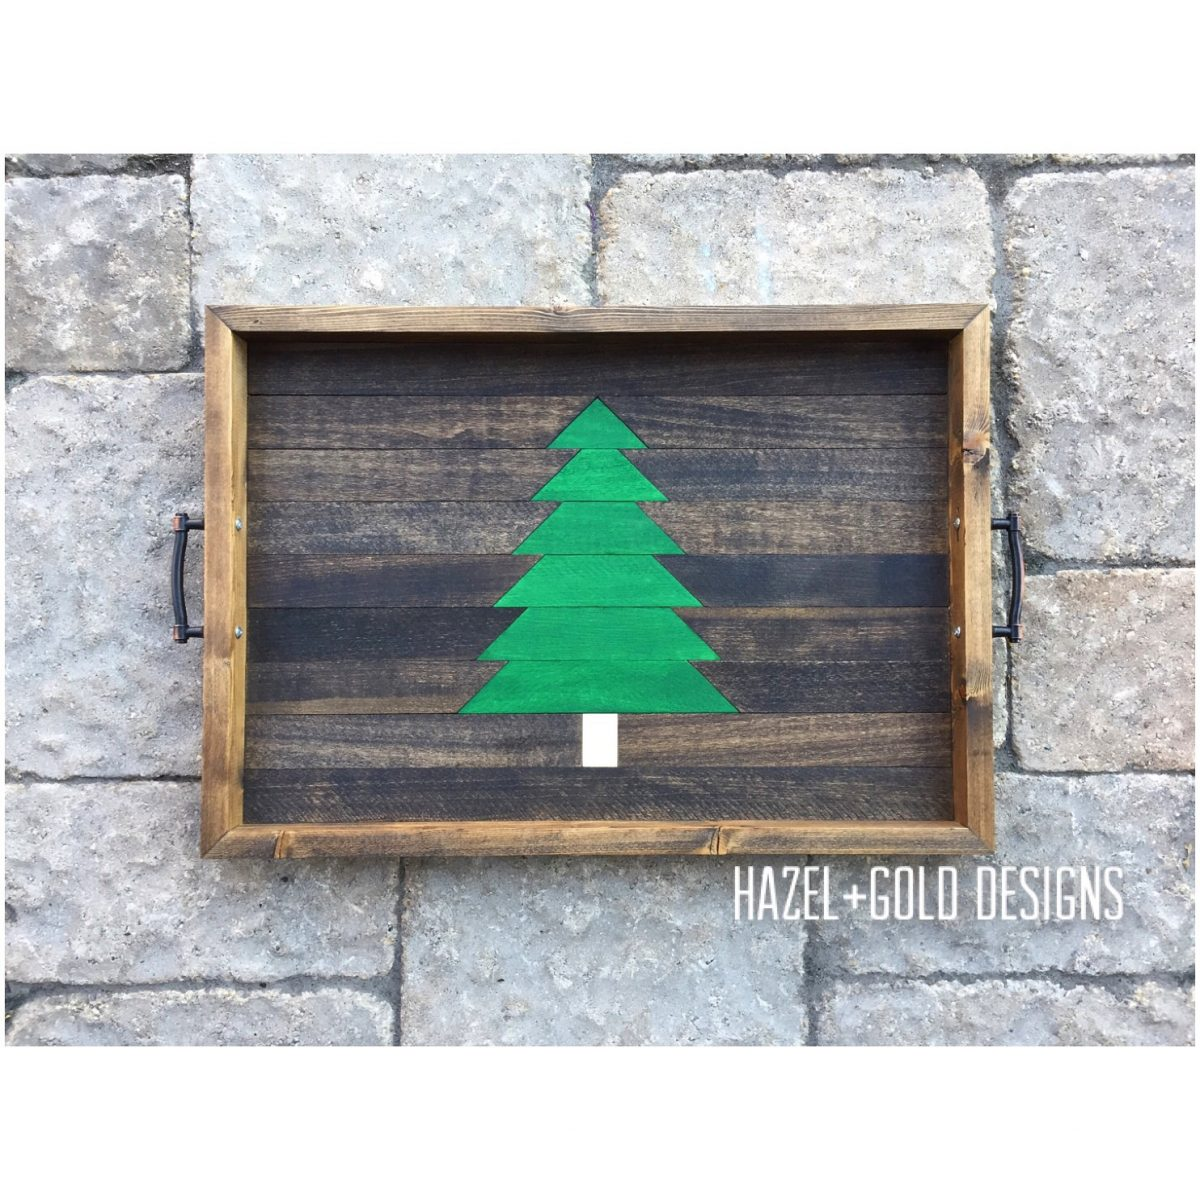 13 Days of a Woodworker Christmas!